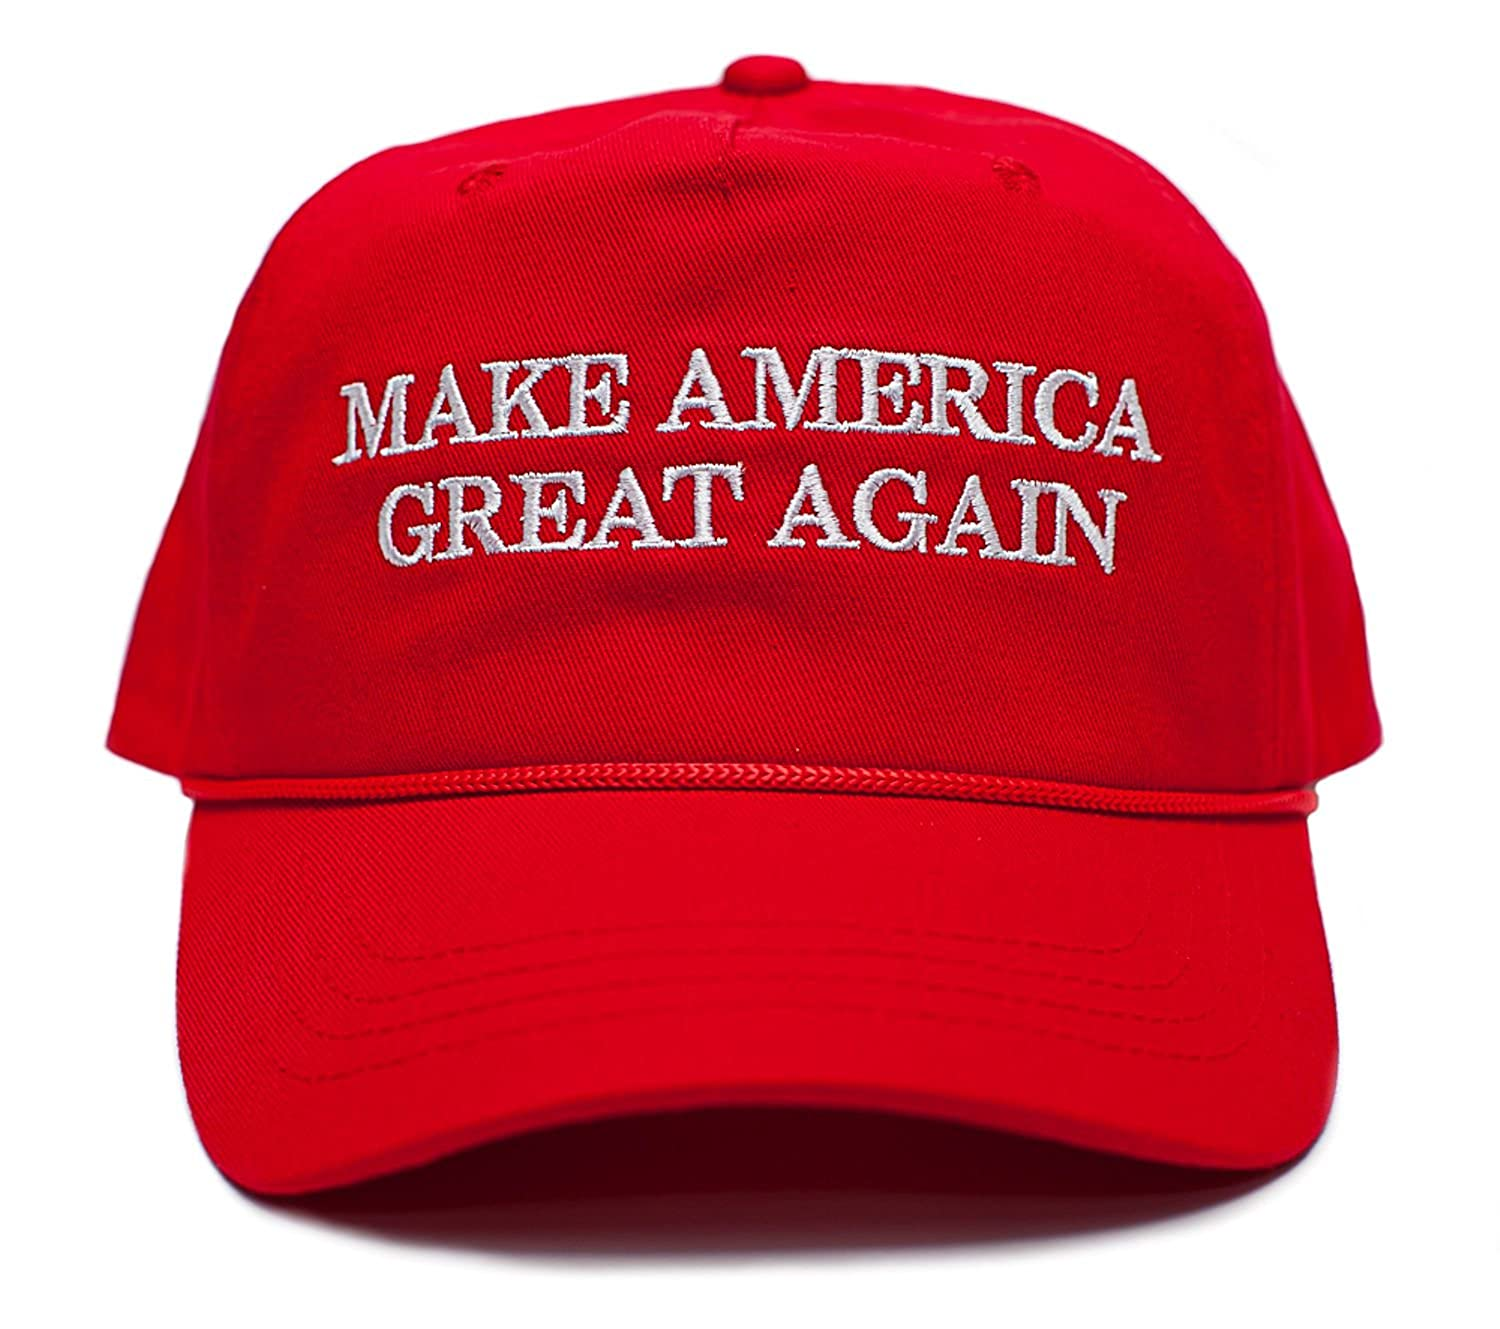 bca12df8226 Back To Back World War Champs Make America Great Again Embroidered Donald  Trump 2016 Cloth   Braid Hat (MAGA Red) at Amazon Men s Clothing store